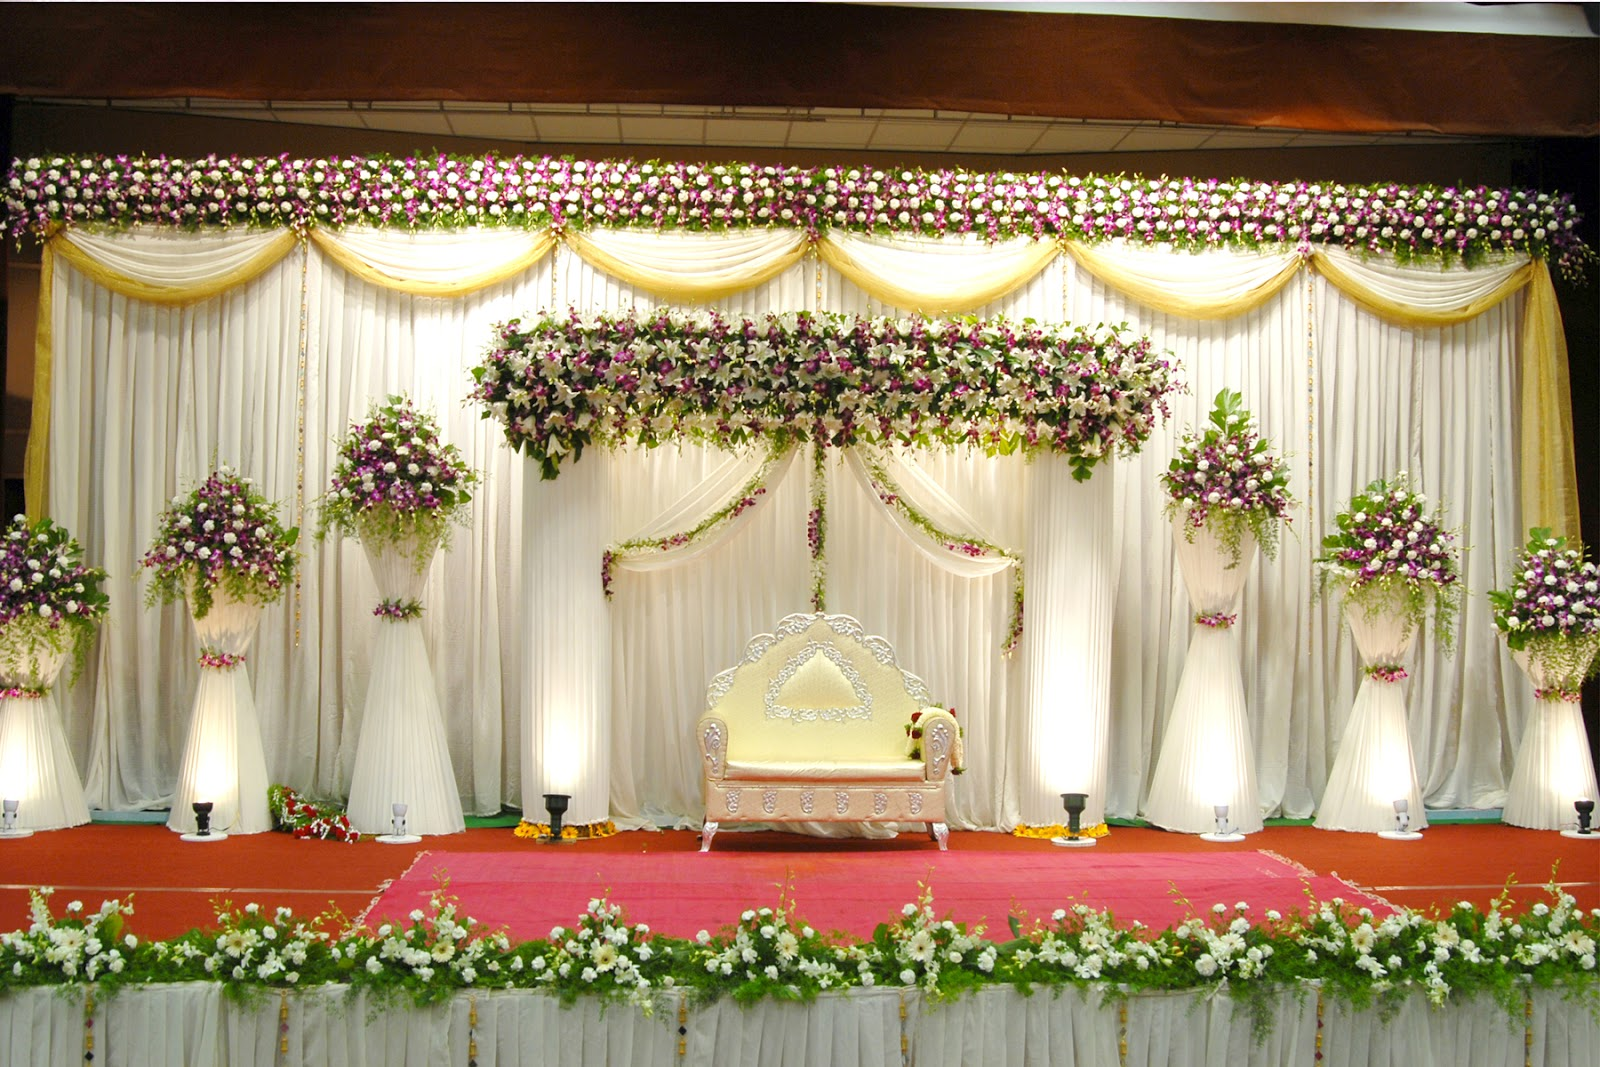 about marriage marriage decoration photos 2013 marriage ForMarriage Decoration Photos